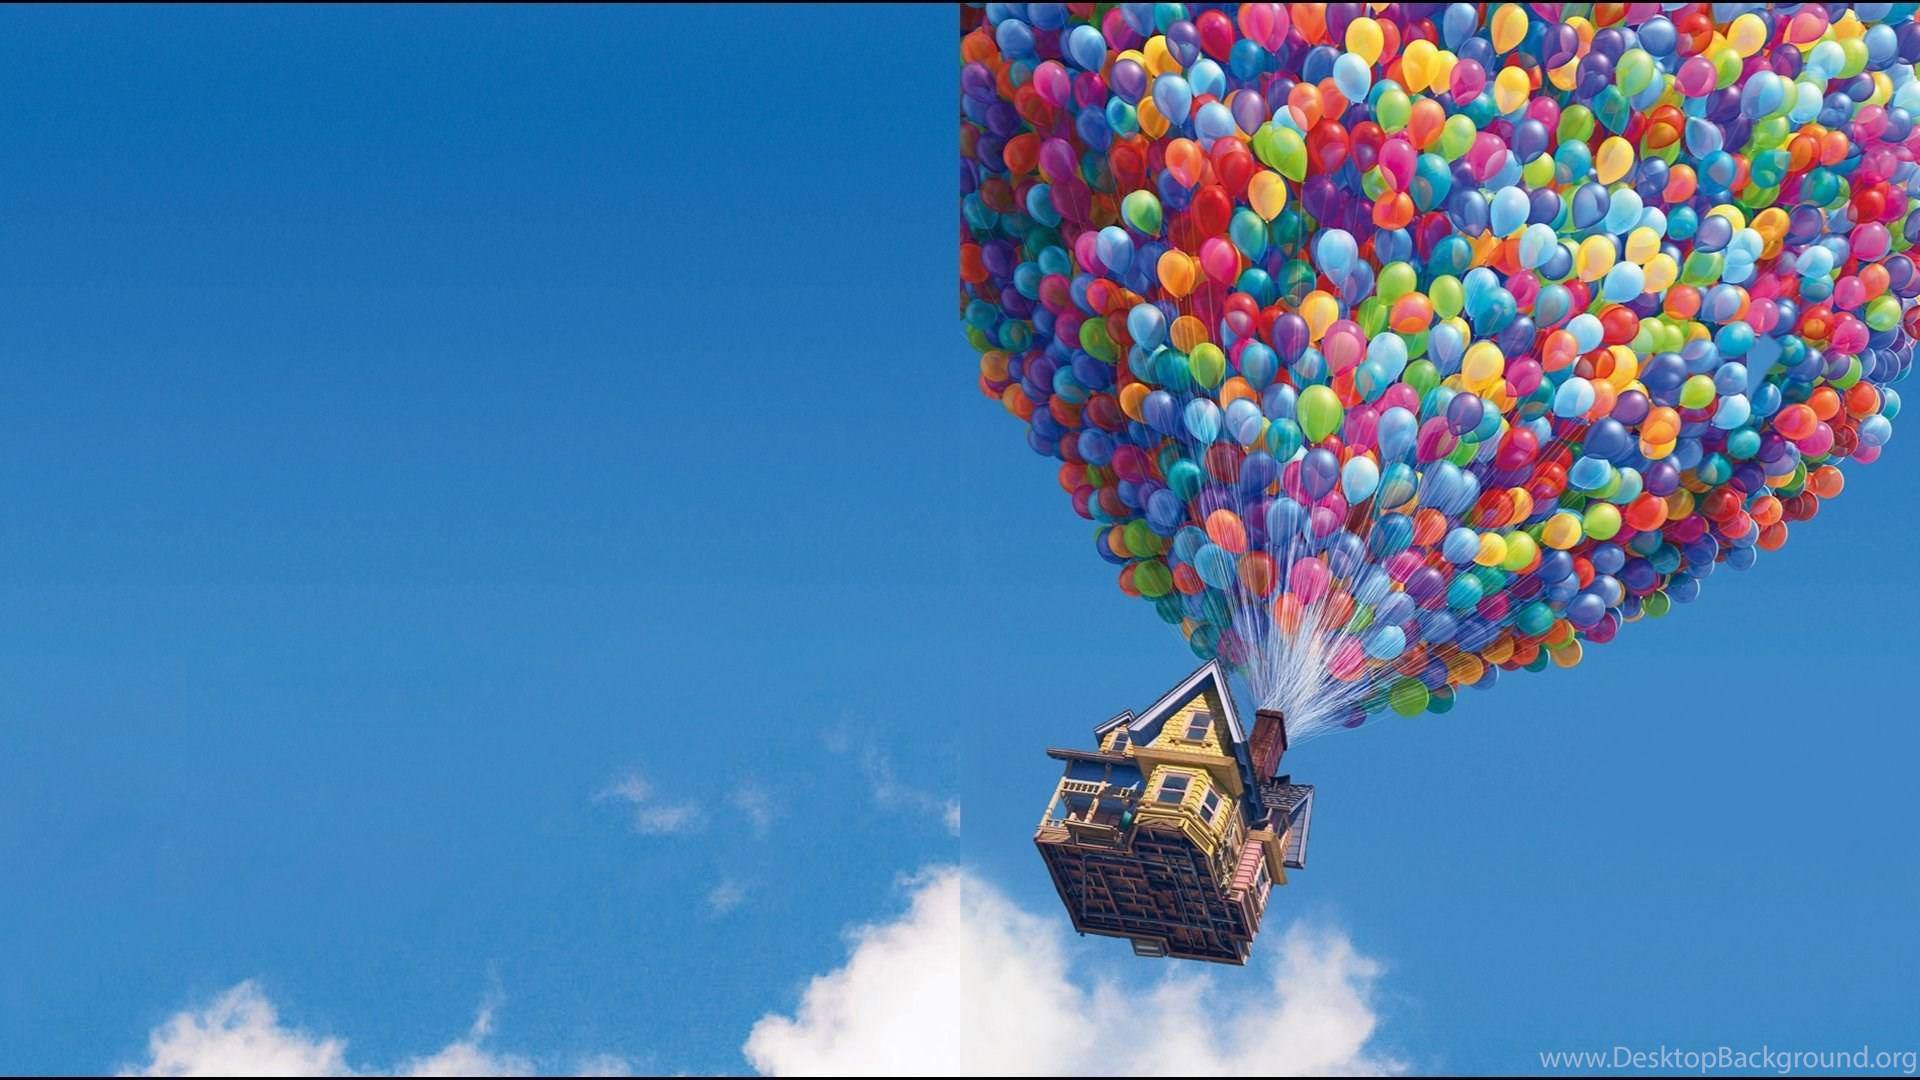 Pixar Up Movie Fresh New Hd Wallpapers [Your Popular HD ...